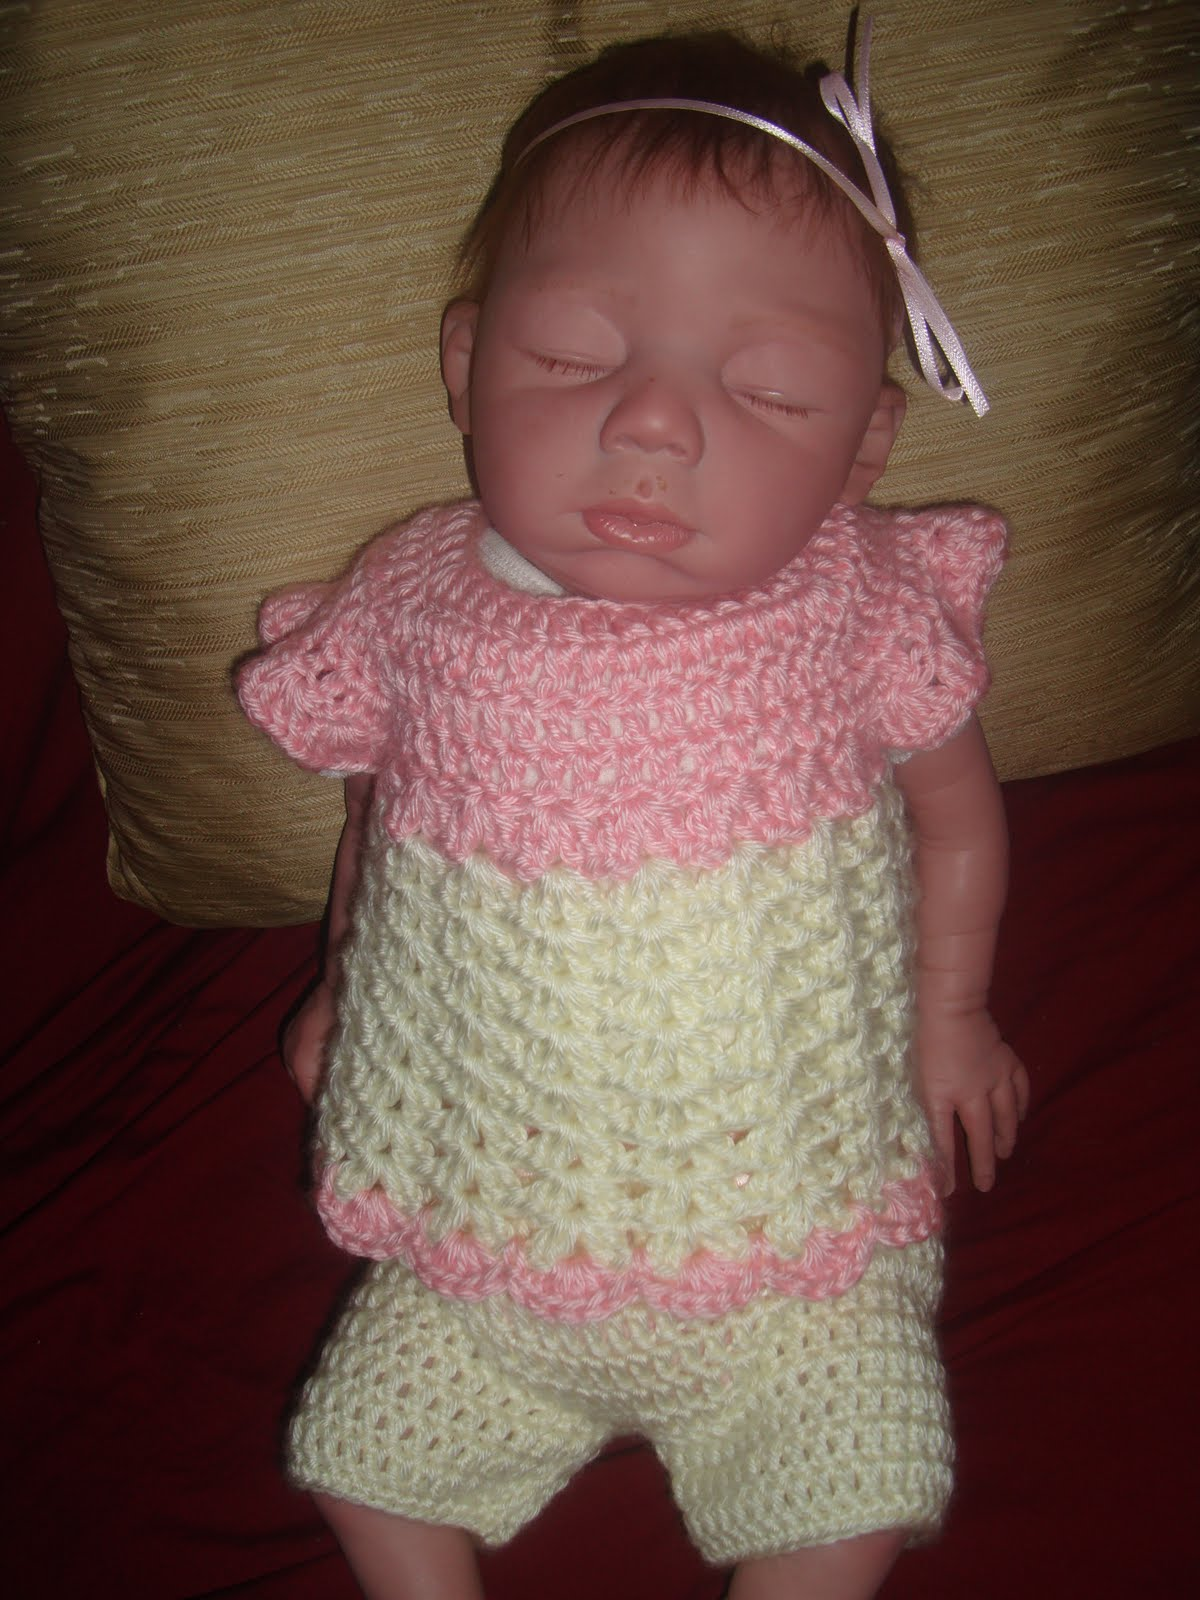 Crocheting Crazy : Crochet Crazy Mama: 2-Piece Baby Girl Outfit